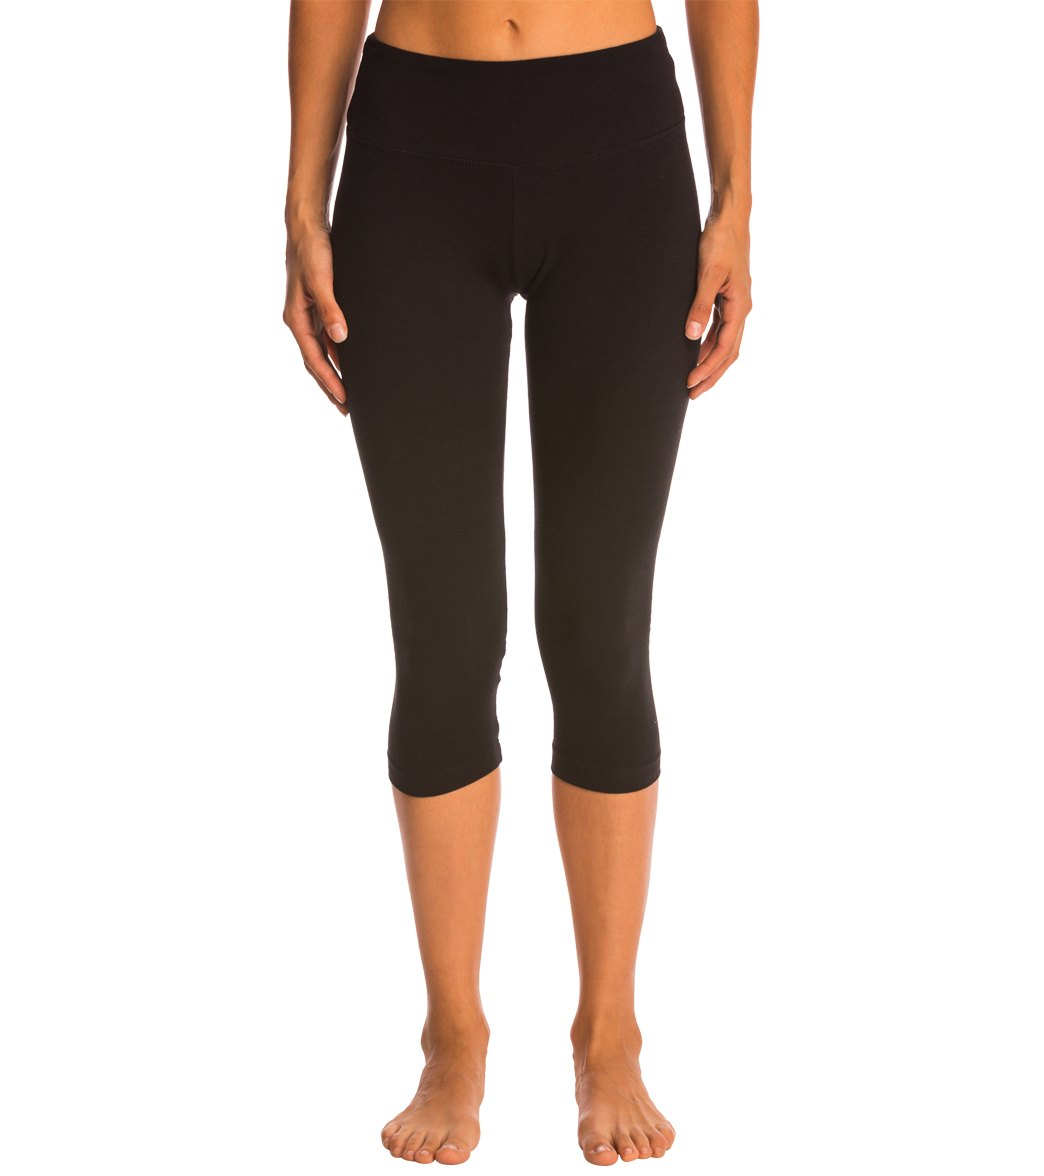 645f957d9a0 Marika Carrie Butt Booster Cotton Yoga Capris at YogaOutlet.com ...